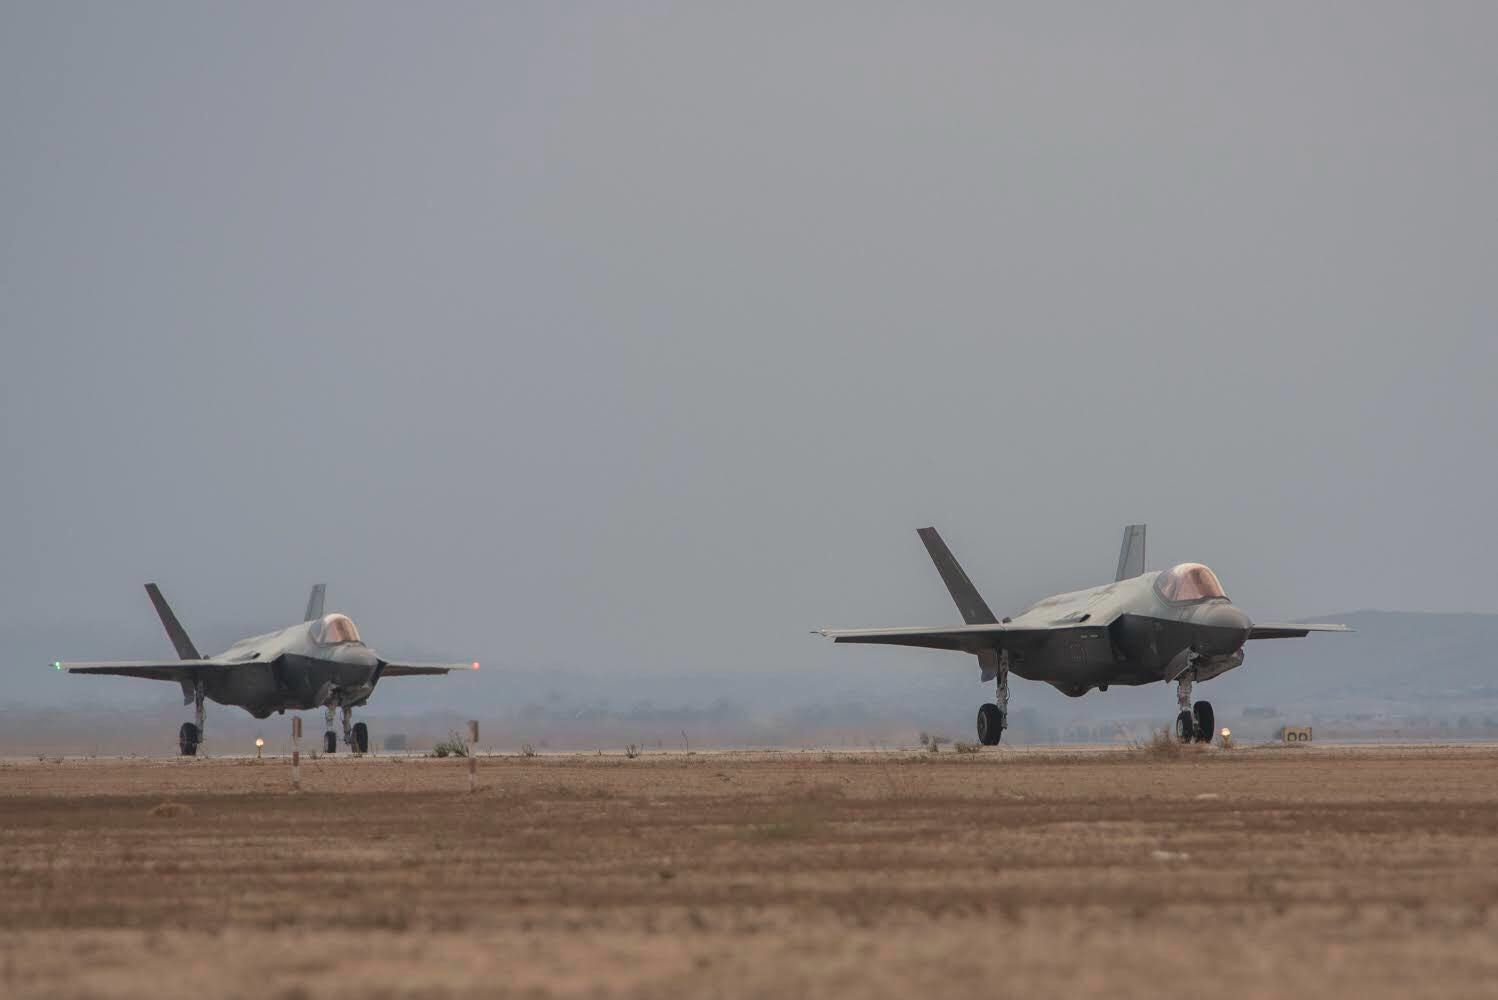 Australia's F-35 fleet grounded after US Joint Strike Fighter crash